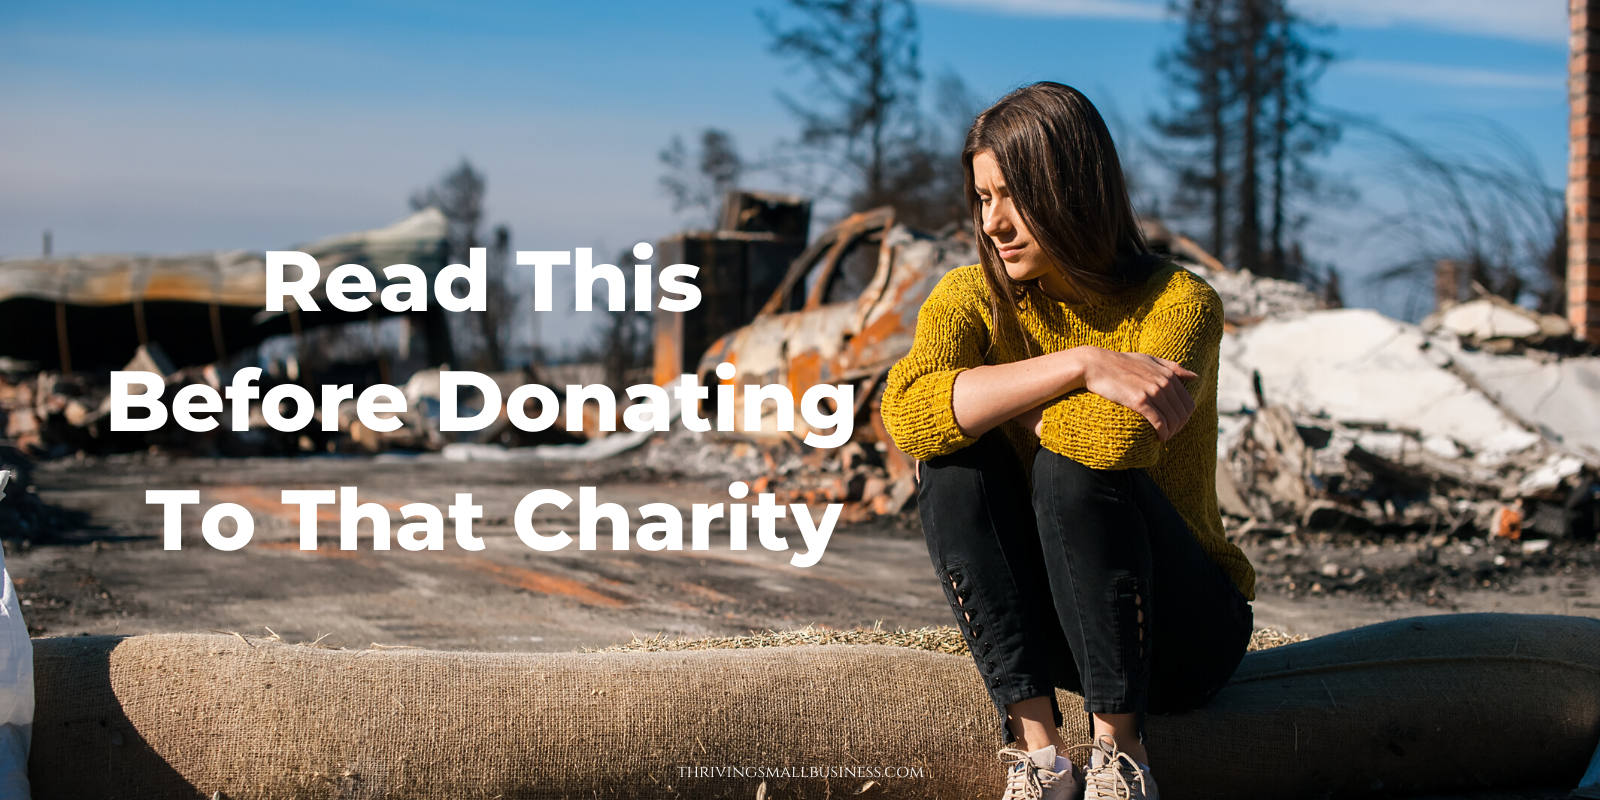 How do I check a charity